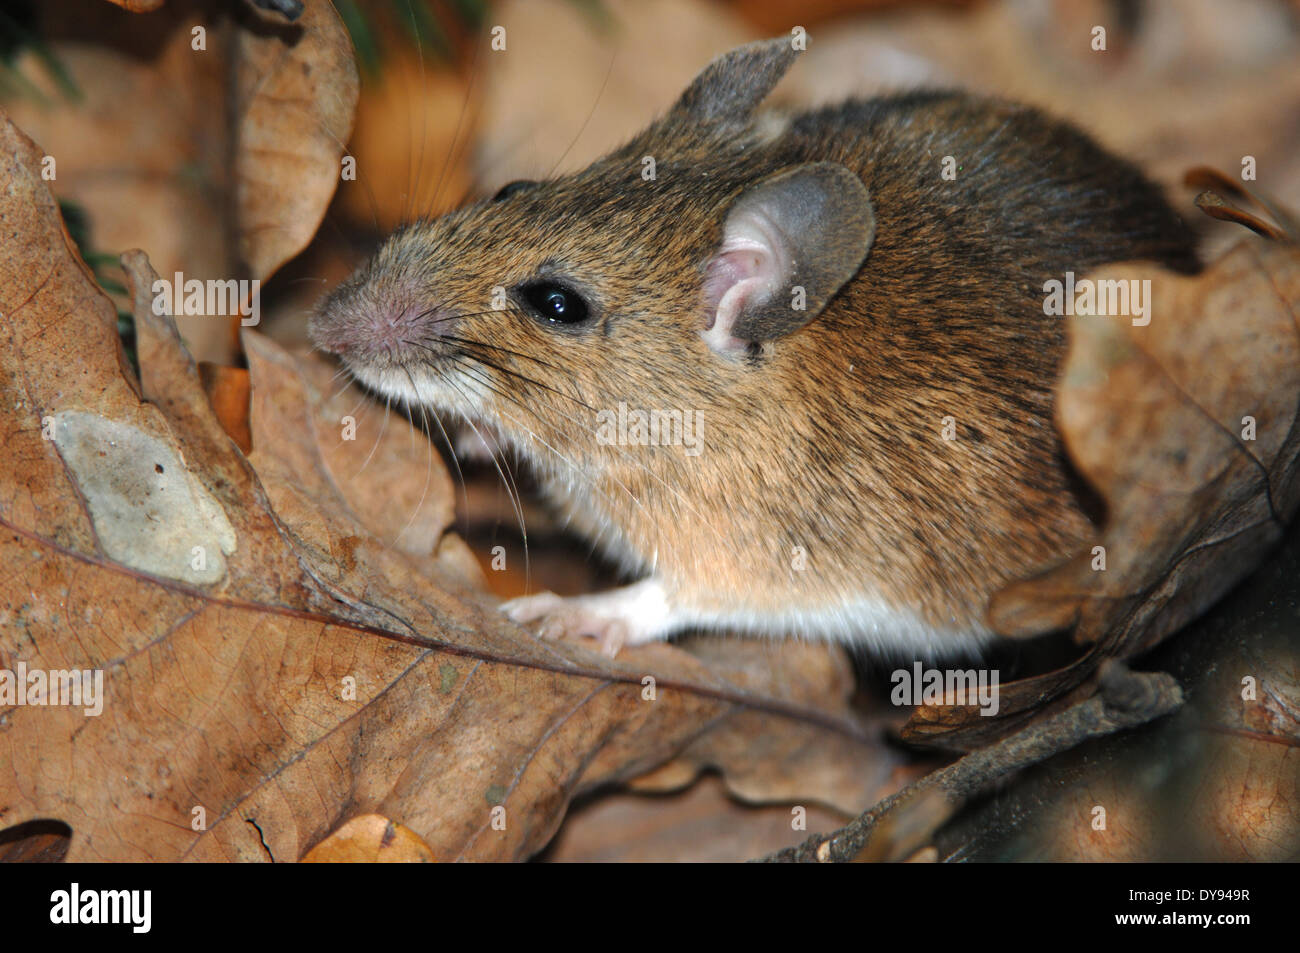 house mouse, rodent, mice, mus musculus, little, mouse, animal, animals, Germany, Europe, Stock Photo